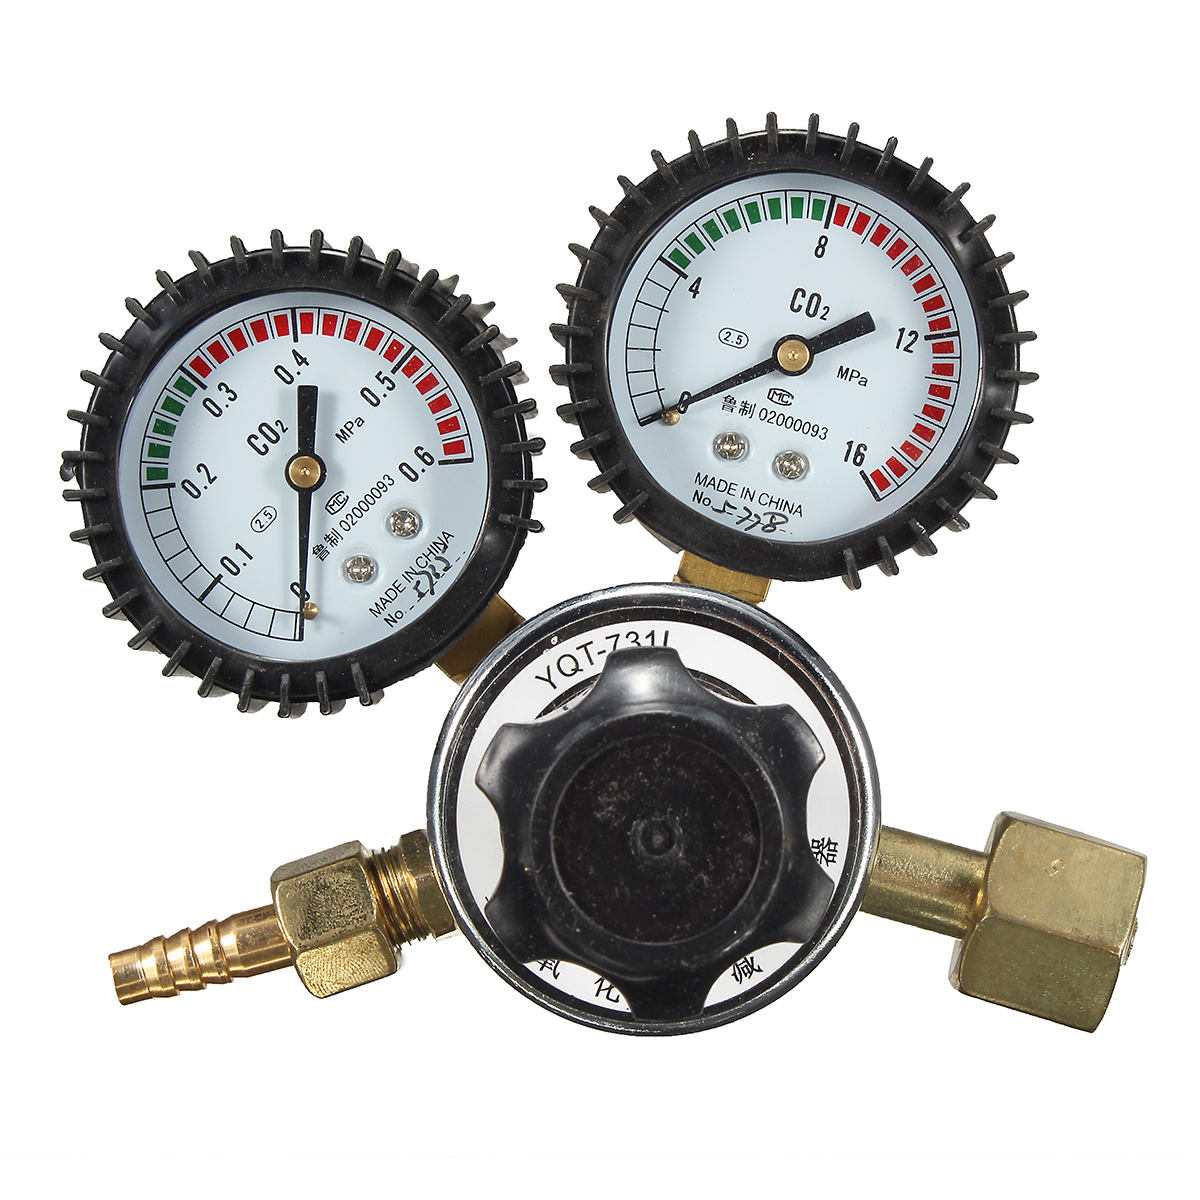 Seismic Double Watch CO2 Pressure Reducing Decompression Valve Flow Meter Tools